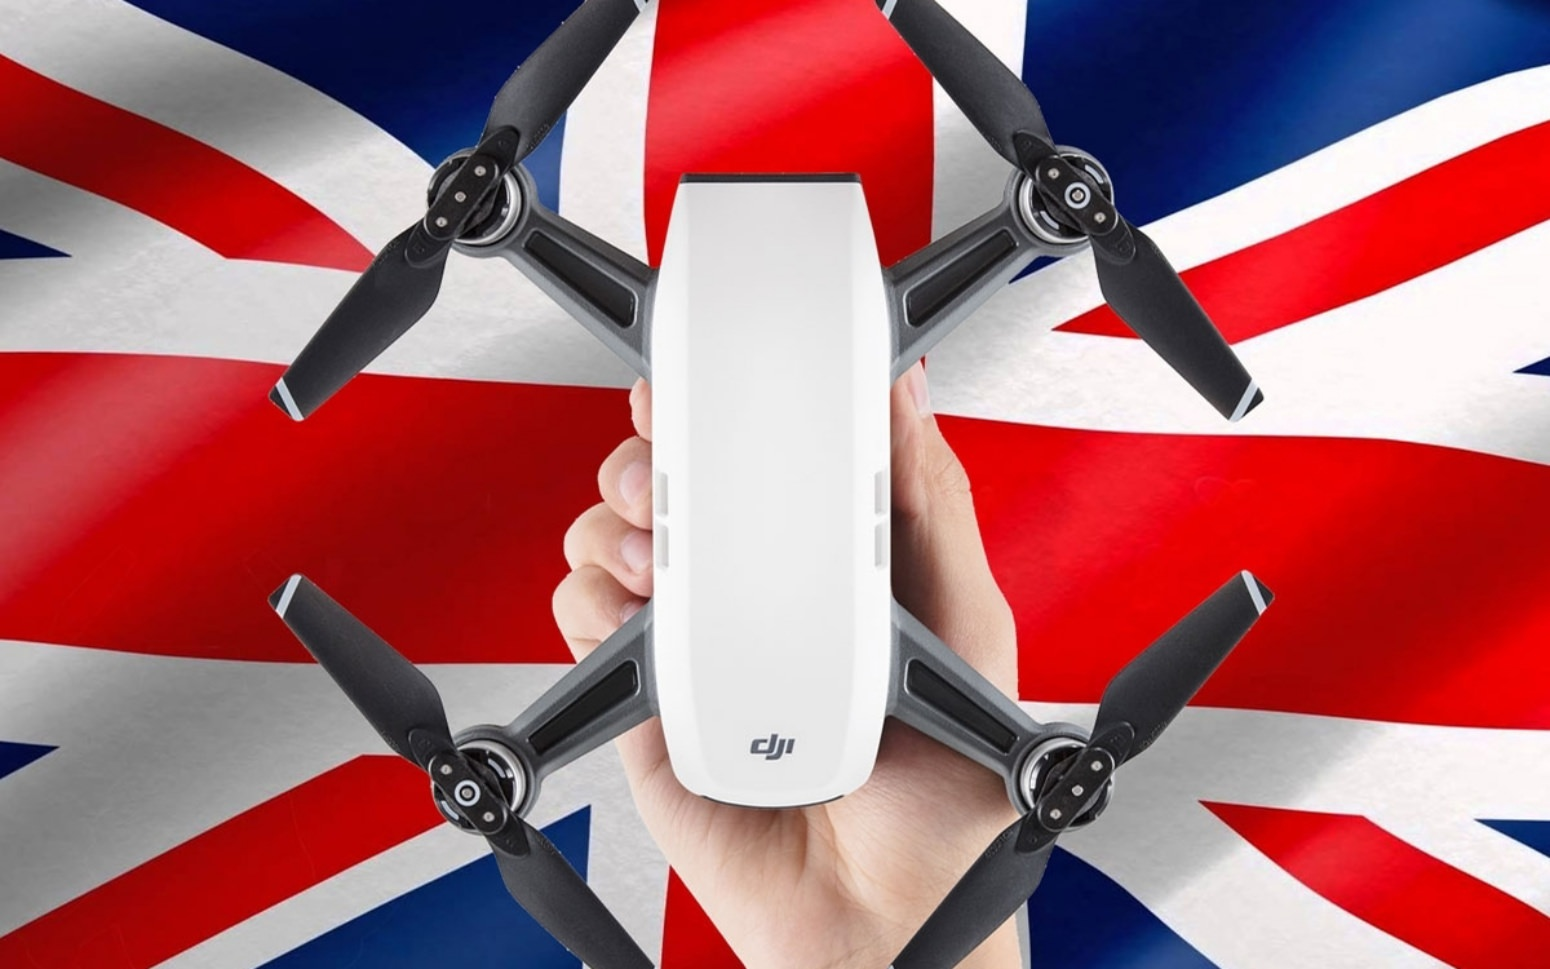 New-drone-and-model-aircraft-registration-and-education-service-in-the-UK.jpg